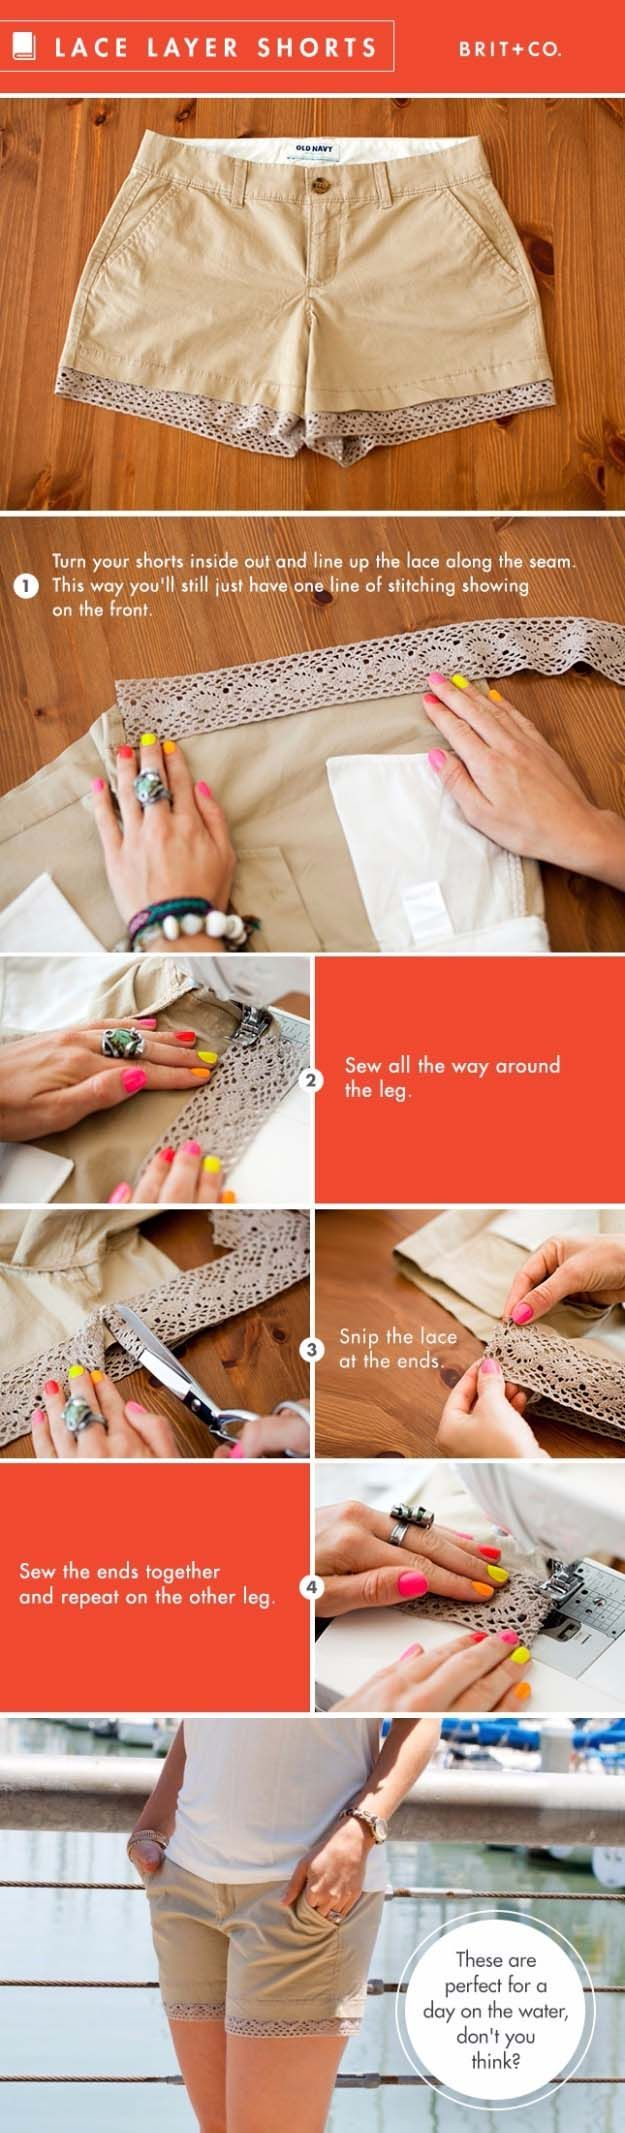 41 Awesomely Easy No-Sew DIY Clothing Hacks - BuzzFeed How to make diy fashion